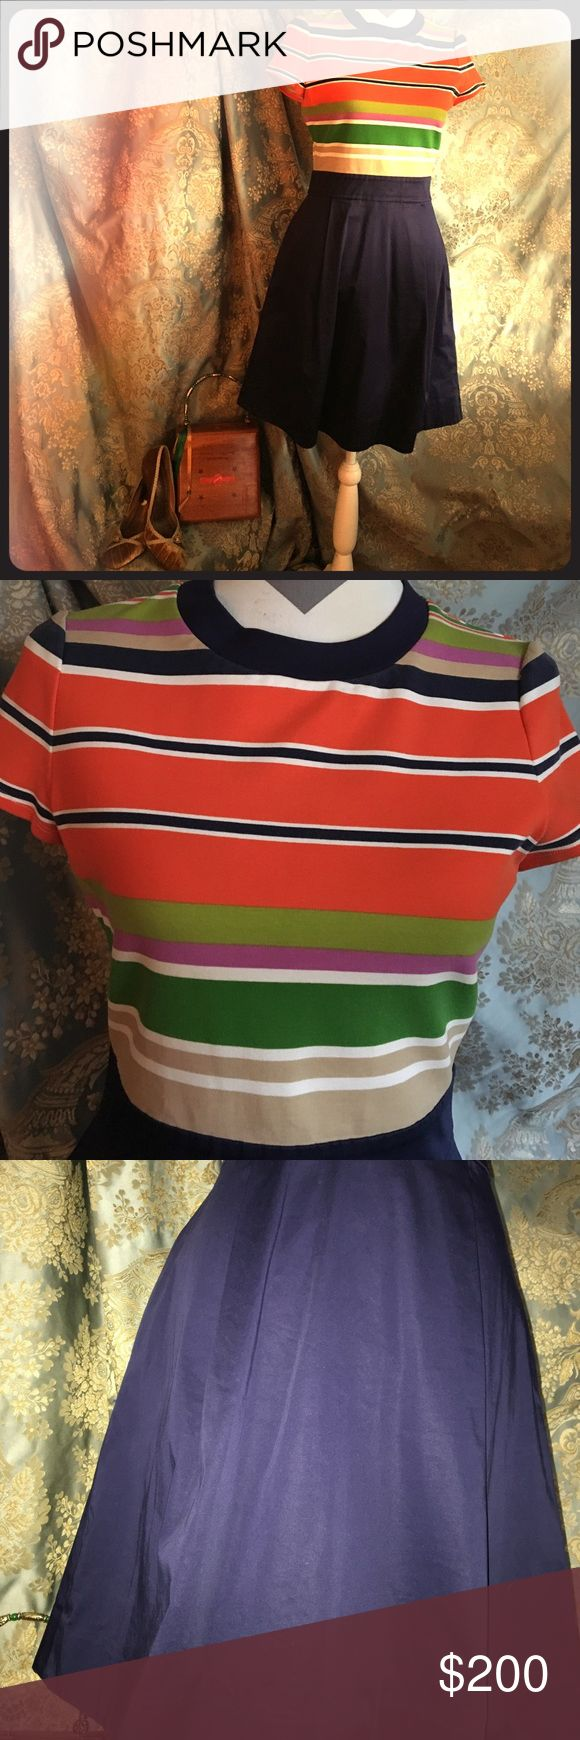 Kate Spade Dress Size 6 NWOT stylish Kaye Spade dress in a size 6. Skirt portion is heavy-weight navy cotton 2 lg. pleats front/back. Top portion is heavy-weight but soft stretch knit in orange/navy/tan/cream/med & lt. green/lavender stripes. Decorative brass zipper w/pull; hook & eye closure at neck. Cigar box purse and gold velvet shoes sold separately. Kate Spade Dresses